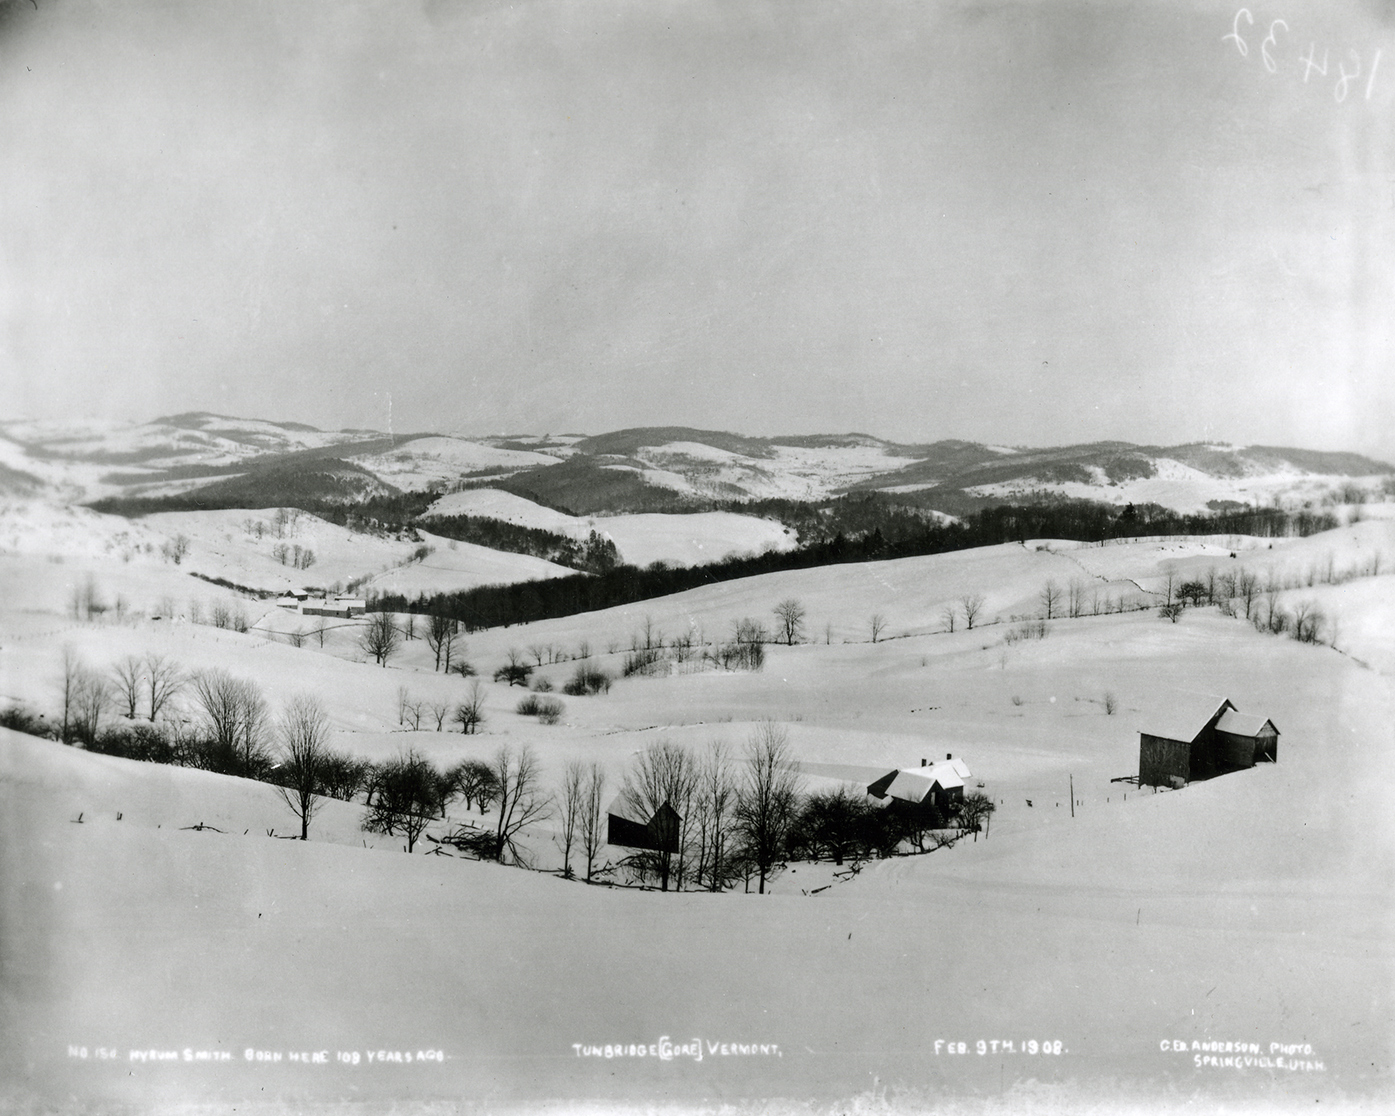 Tunbridge Vermont, February 1908. Photo by George E. Anderson